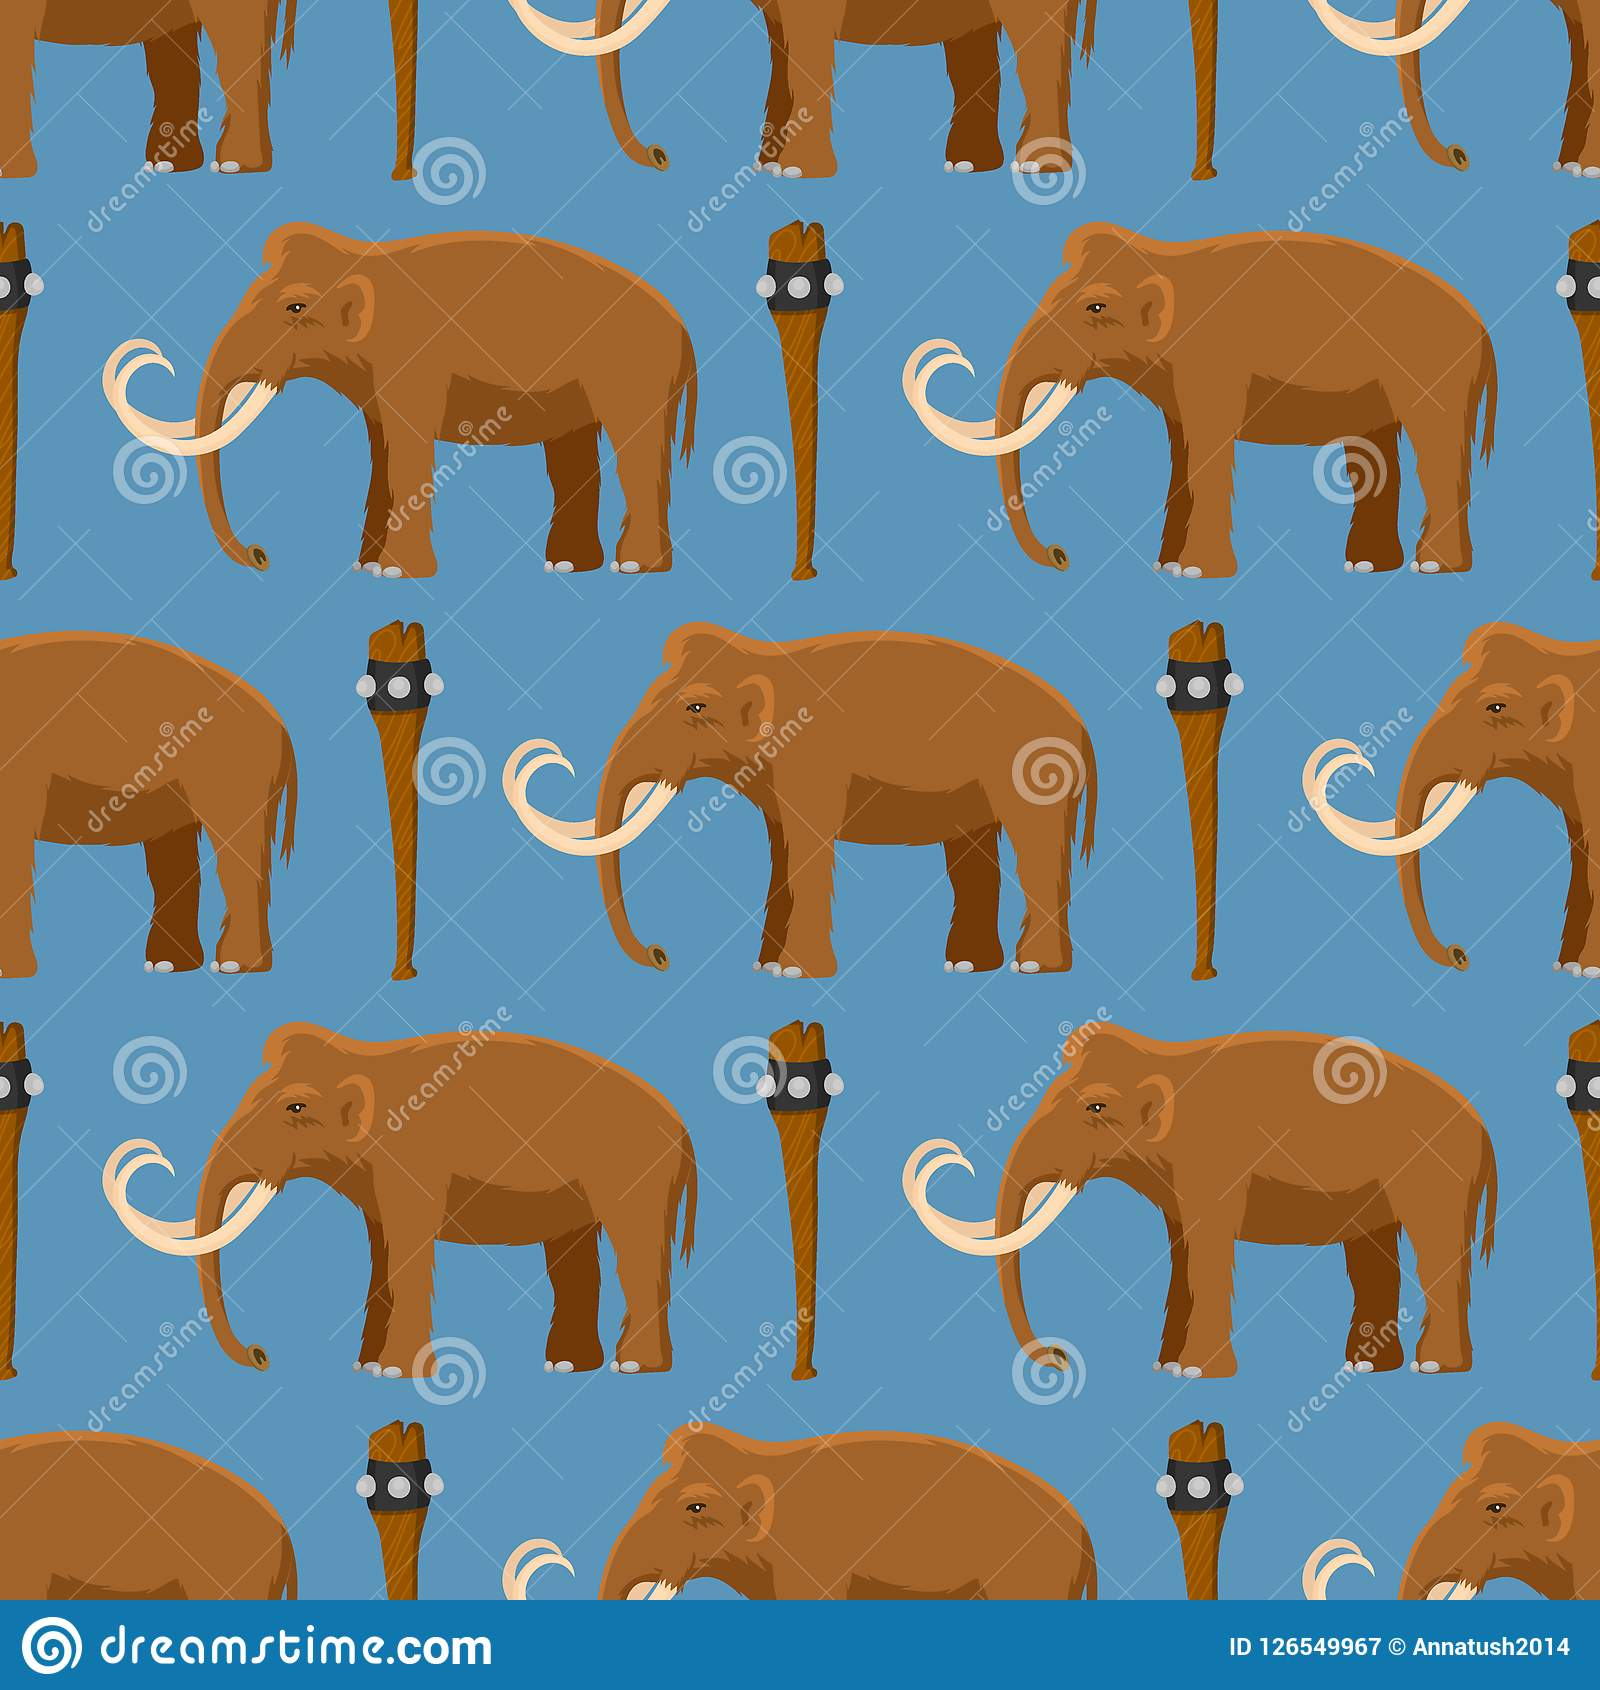 Mammoth Vector Mammal Animal Character With Tusk And Trunk In